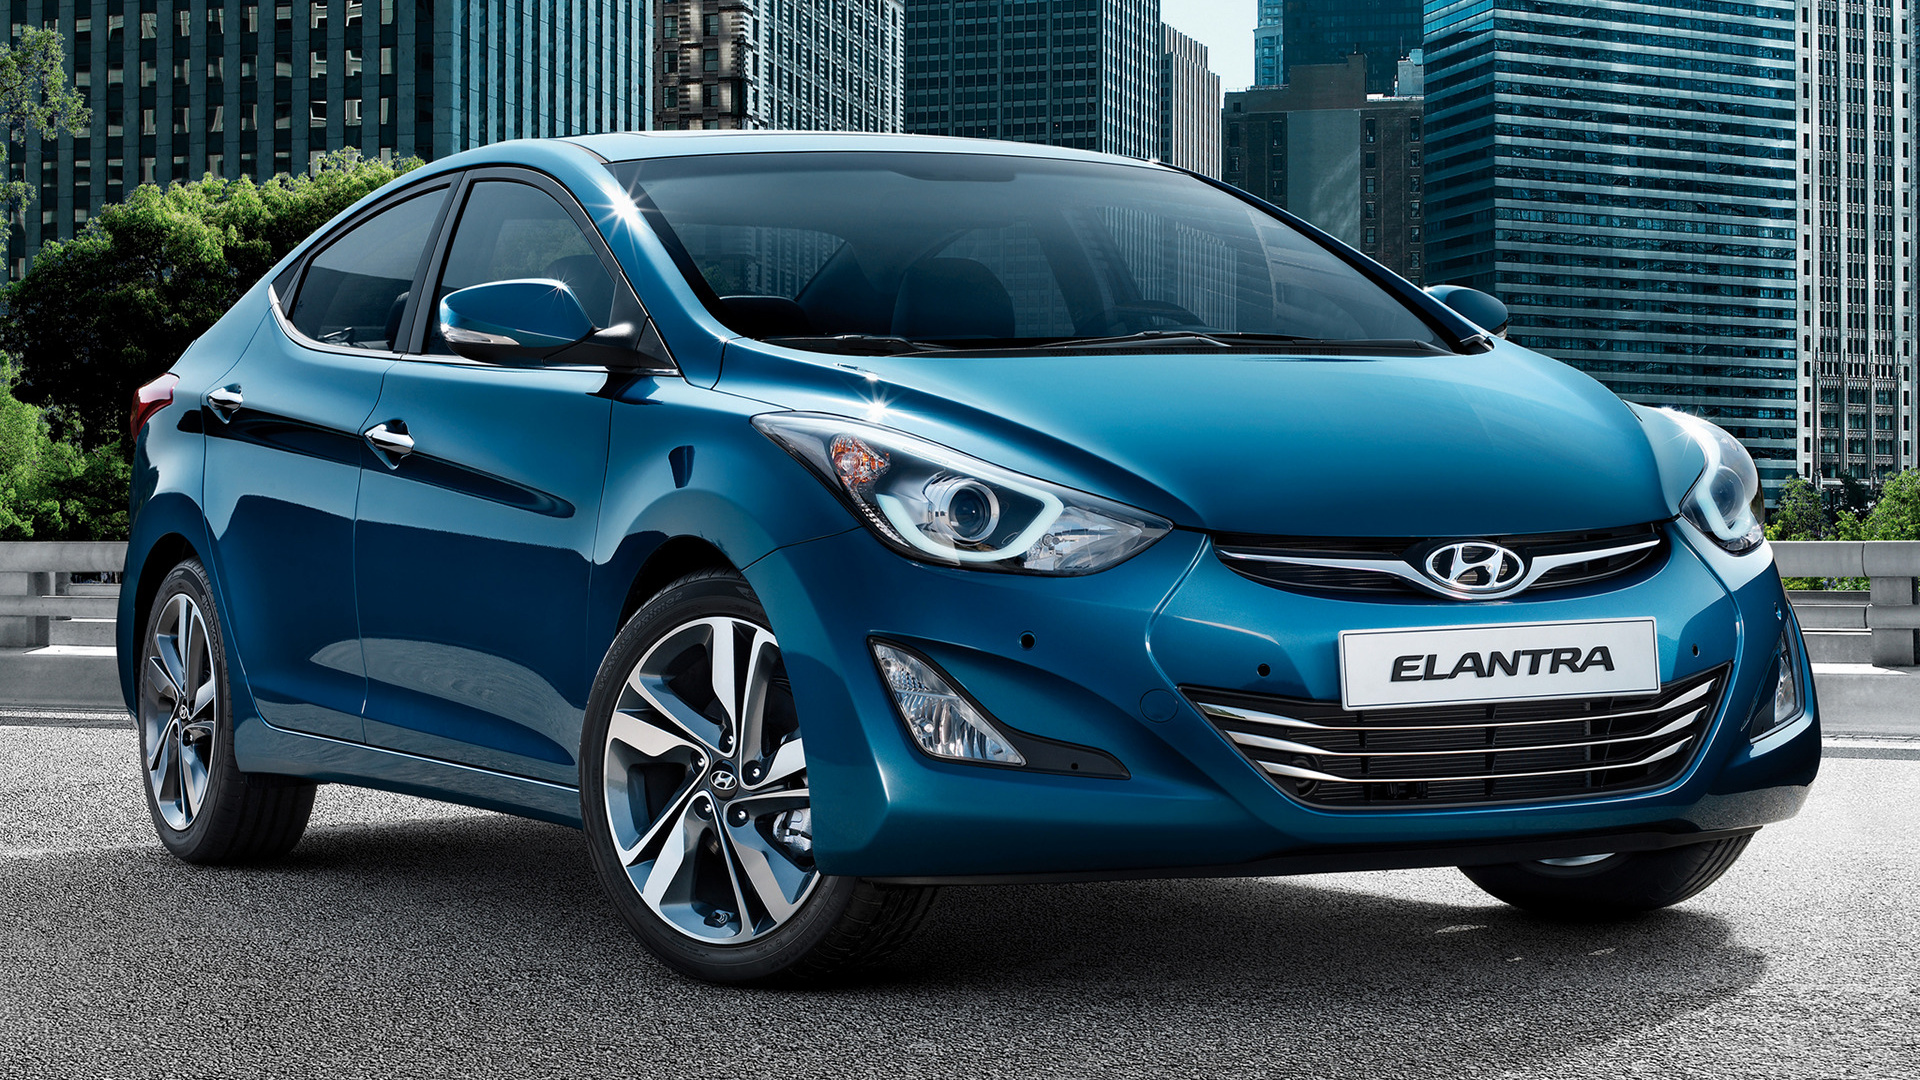 Hyundai Elantra Coupe >> 2014 Hyundai Elantra - Wallpapers and HD Images | Car Pixel